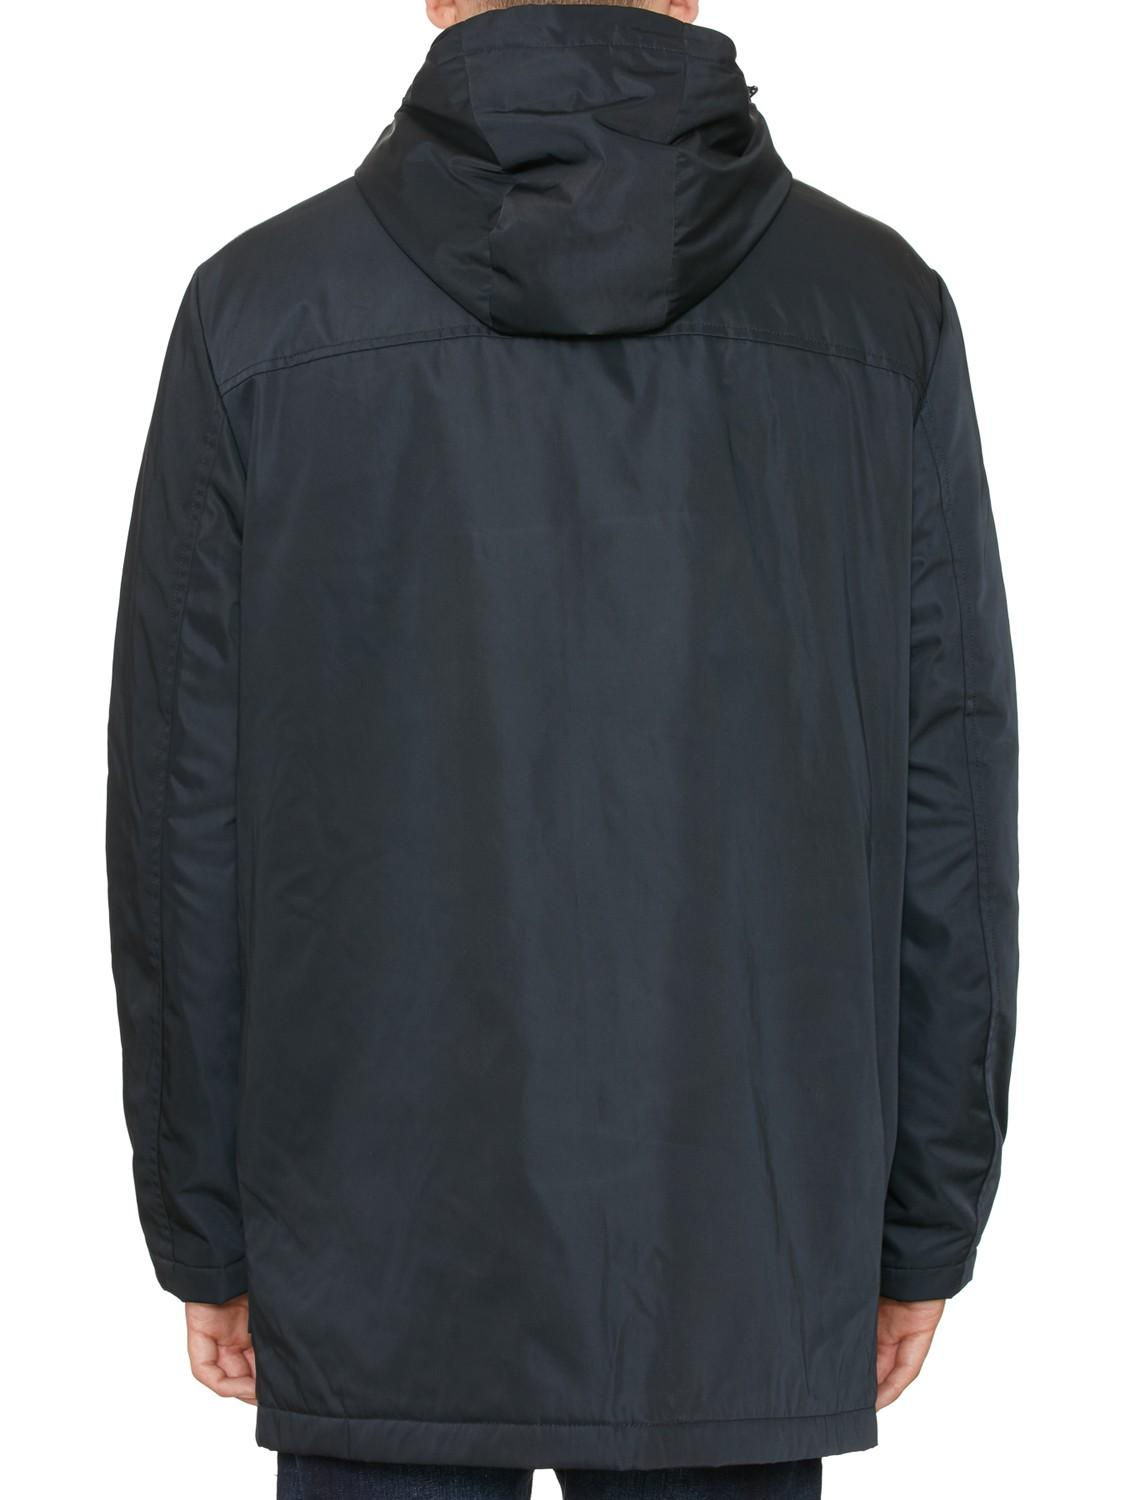 Original Penguin Synthetic Water Resistant Twill Quilted Parka Jacket in Black for Men